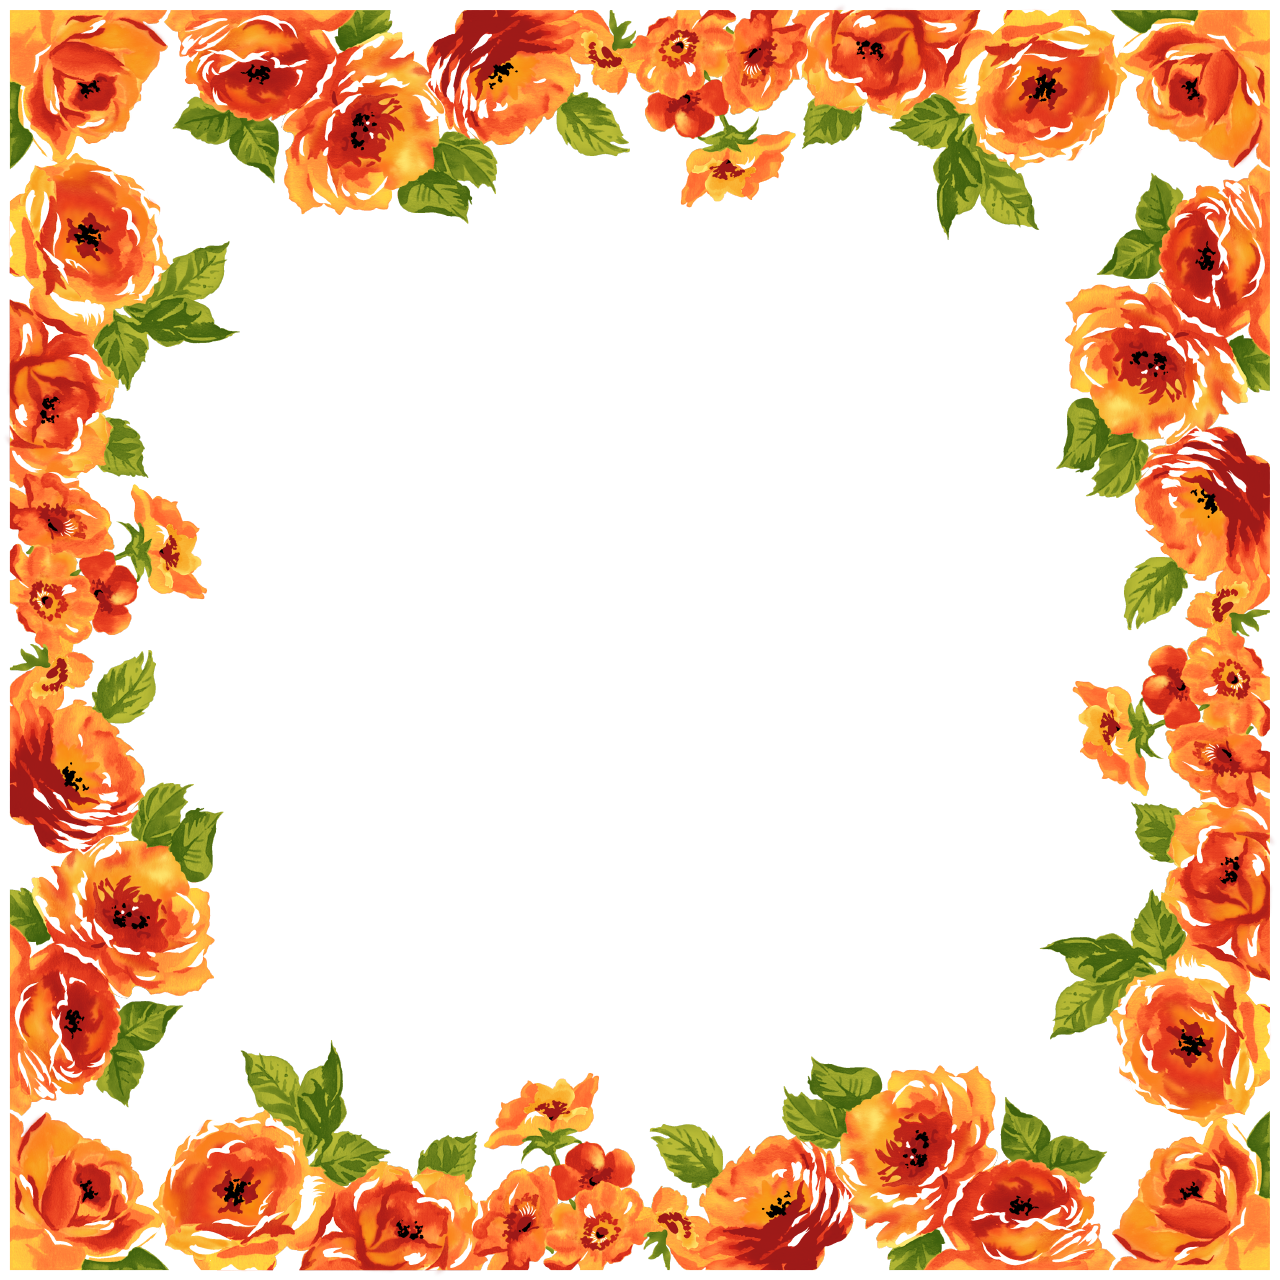 Wedding border designs png. Fancy transparent images all